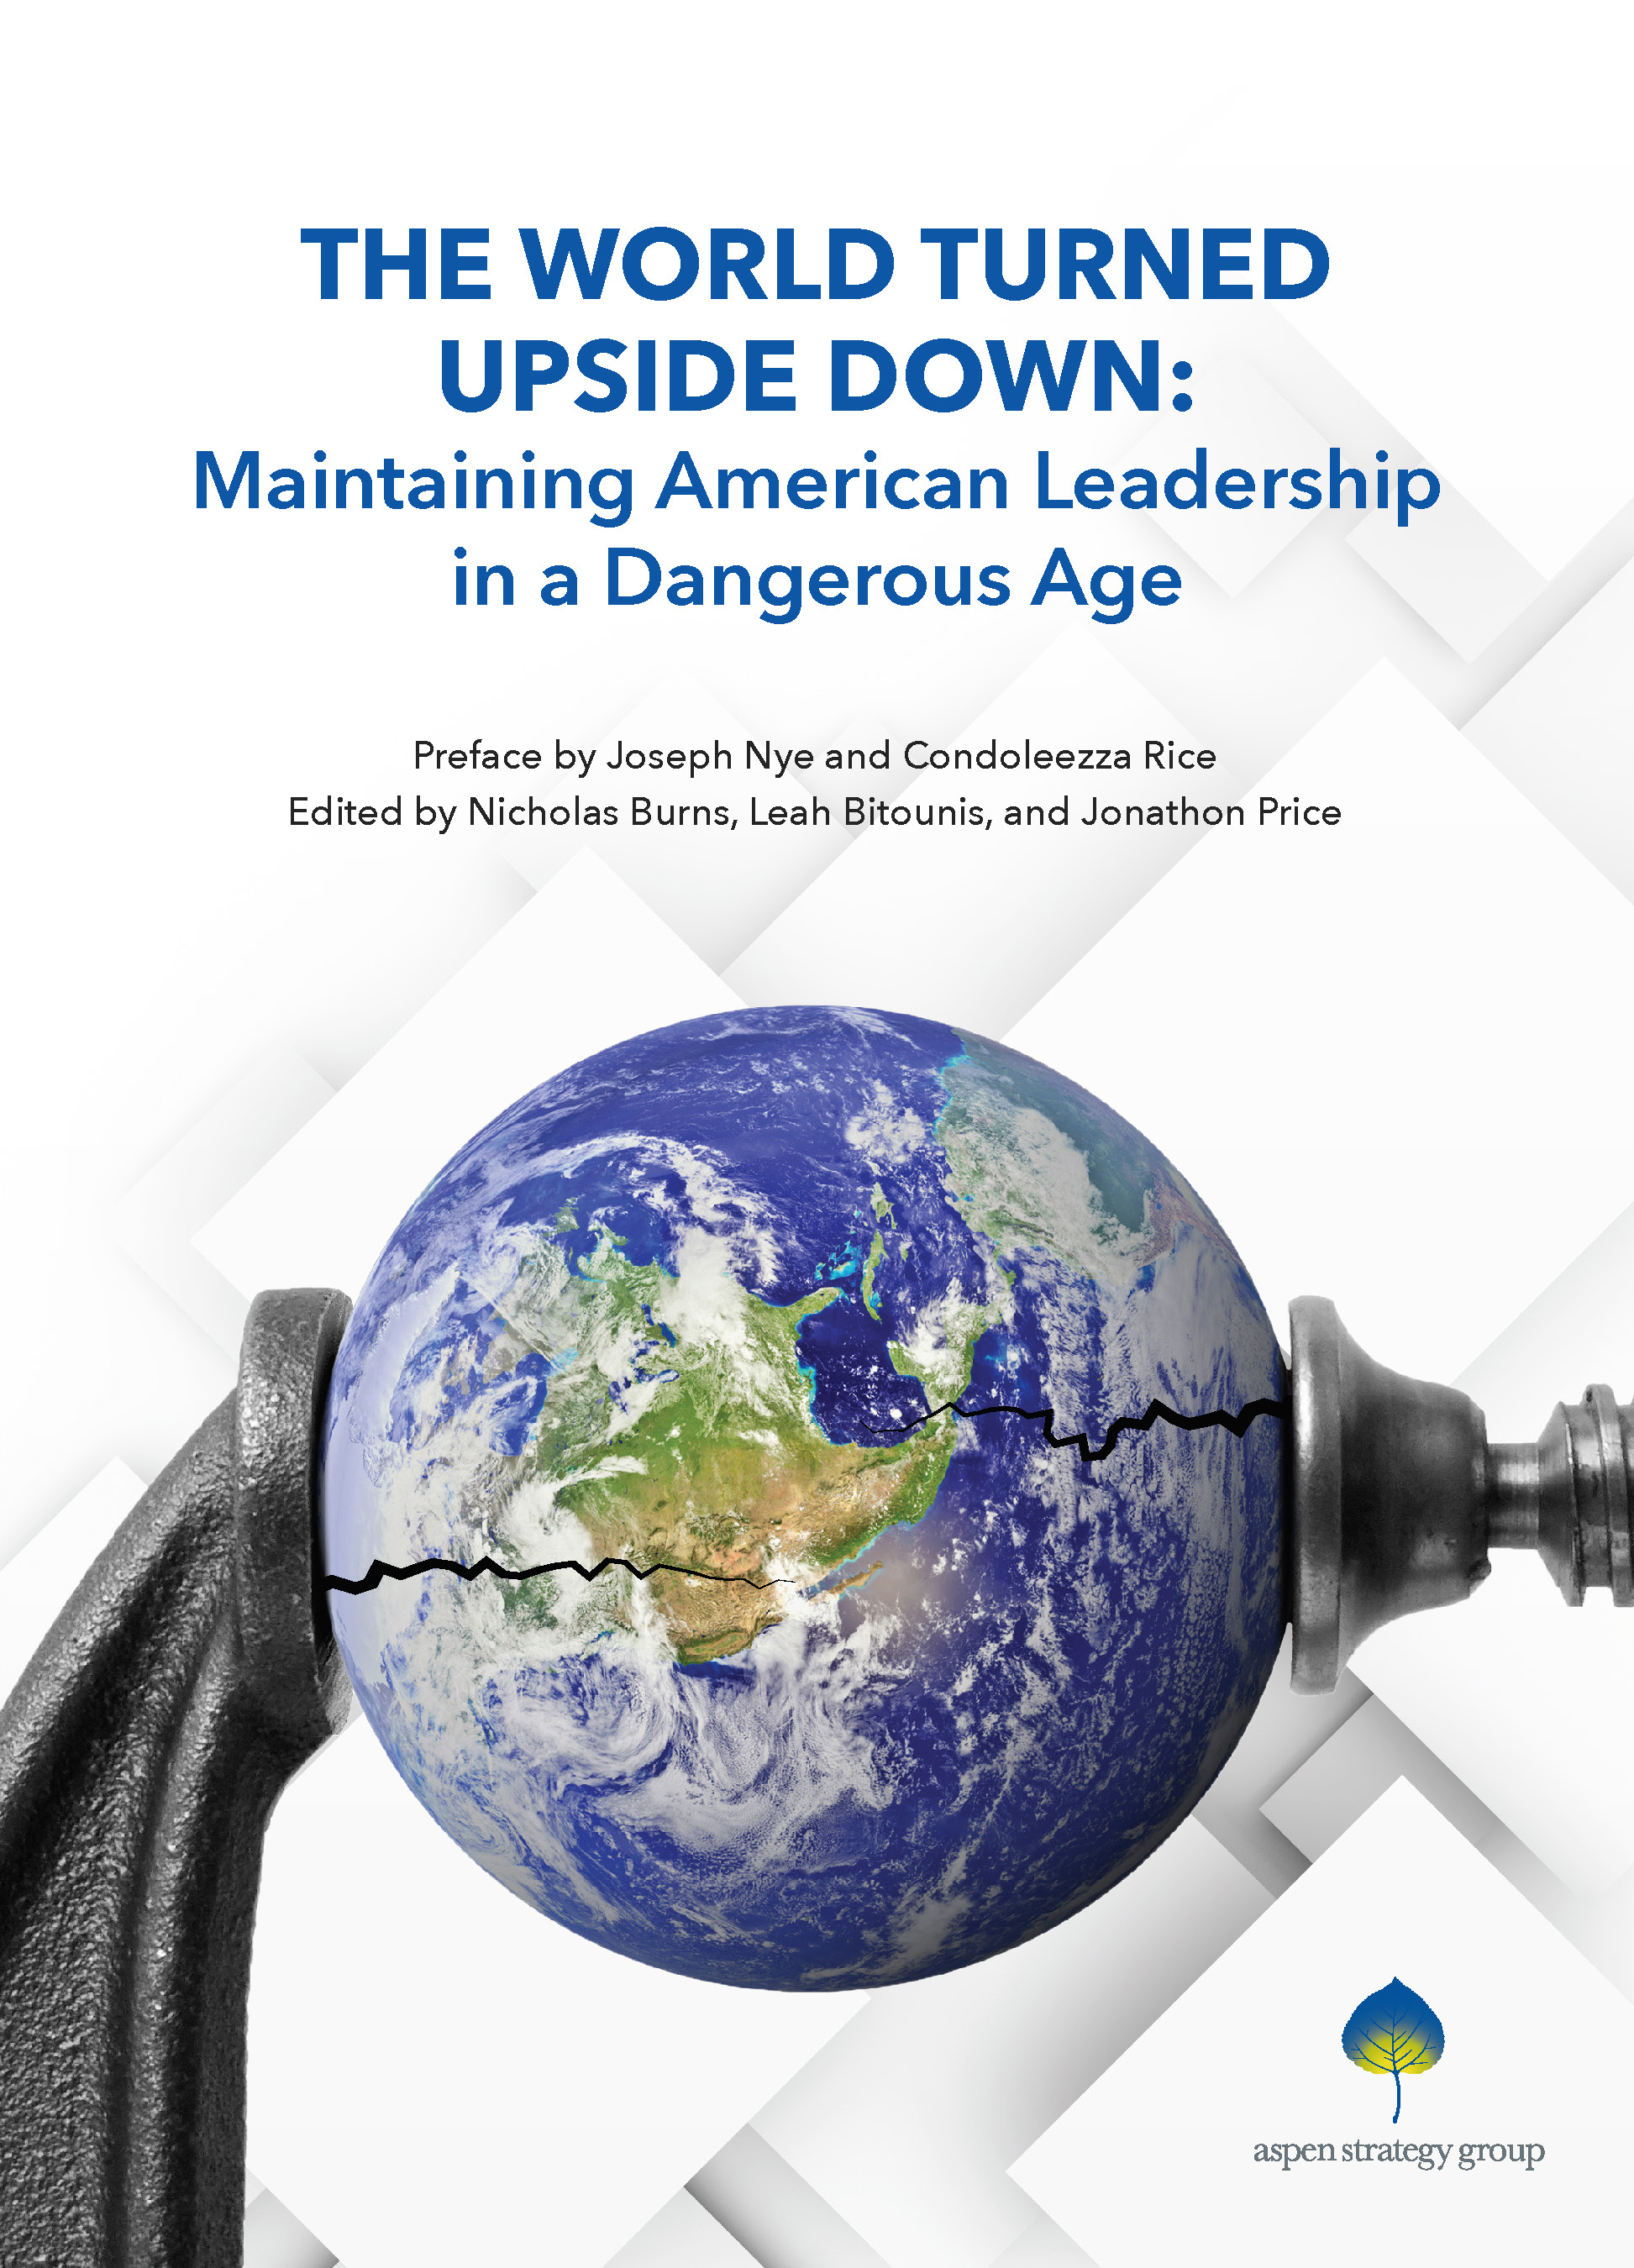 The World Turned Upside Down - In 2017, the Aspen Strategy Group examined the future of the liberal world order. The papers in this volume outline the history and importance the system of institutions and normative values that have underpinned the international system since the end of WWII. They also highlight some of the key threats to this order that have emerged over the past several years and endeavor to provide practical recommendations for meeting these challenges.Authors include: Madeleine K. Albright, Stephen E. Biegun, Richard Danzig, John Deutch, John Dowdy, Michèle A. Flournoy, Michael Froman, Stephen Hadley, Christopher Kirchhoff, Anja Manuel, Condoleezza Rice, Carla Anne Robbins, David E. Sanger, David Shambaugh, Dov S. Zakheim, and Philip Zelikow.Published: December 12, 2017